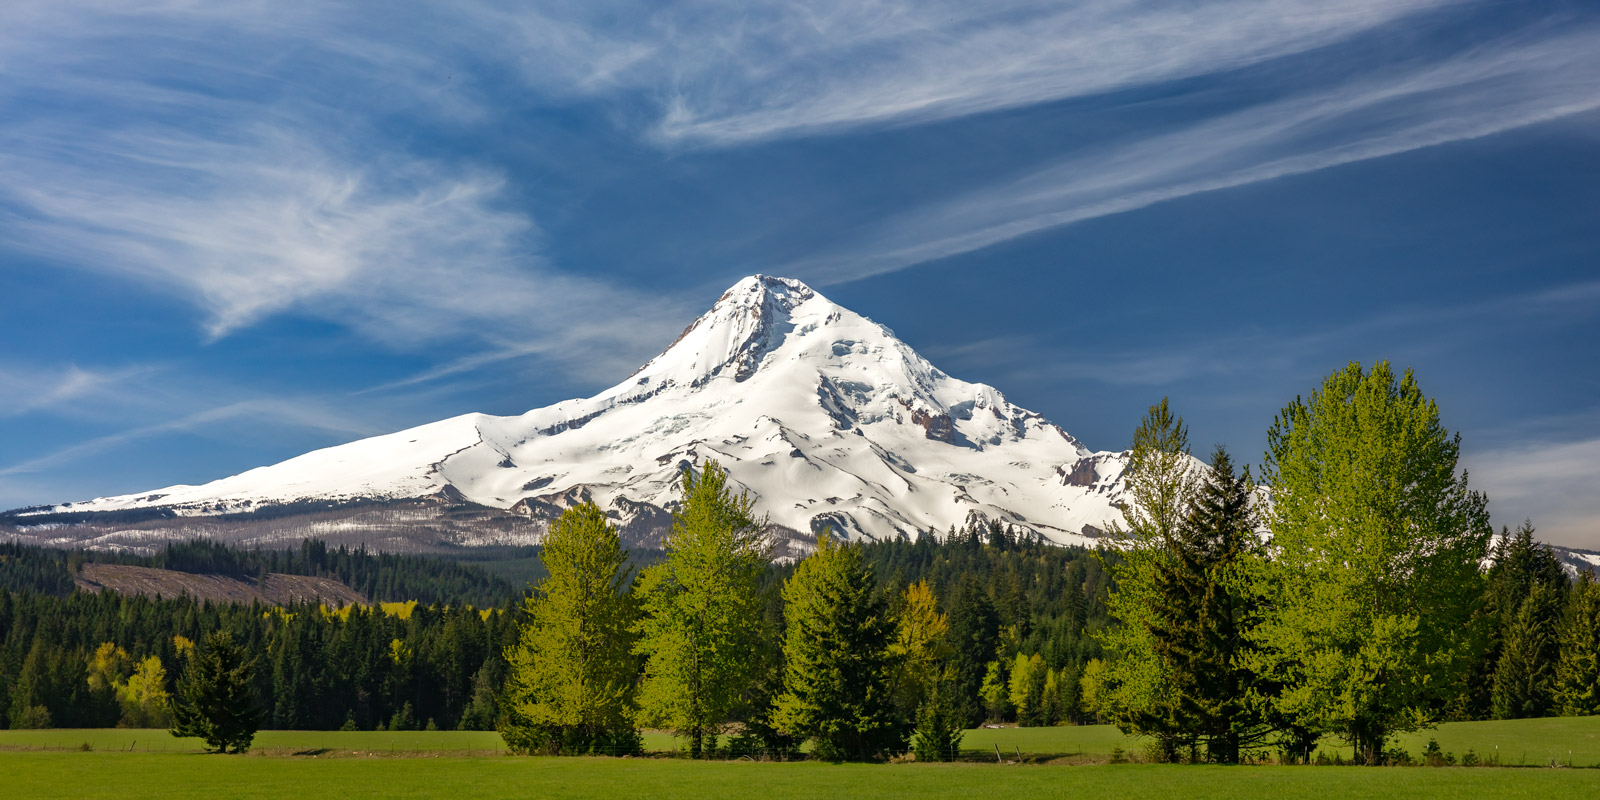 Oregon, Mount Hood, Spring, snow covered, limited edition, photograph, fine art, landscape, photo